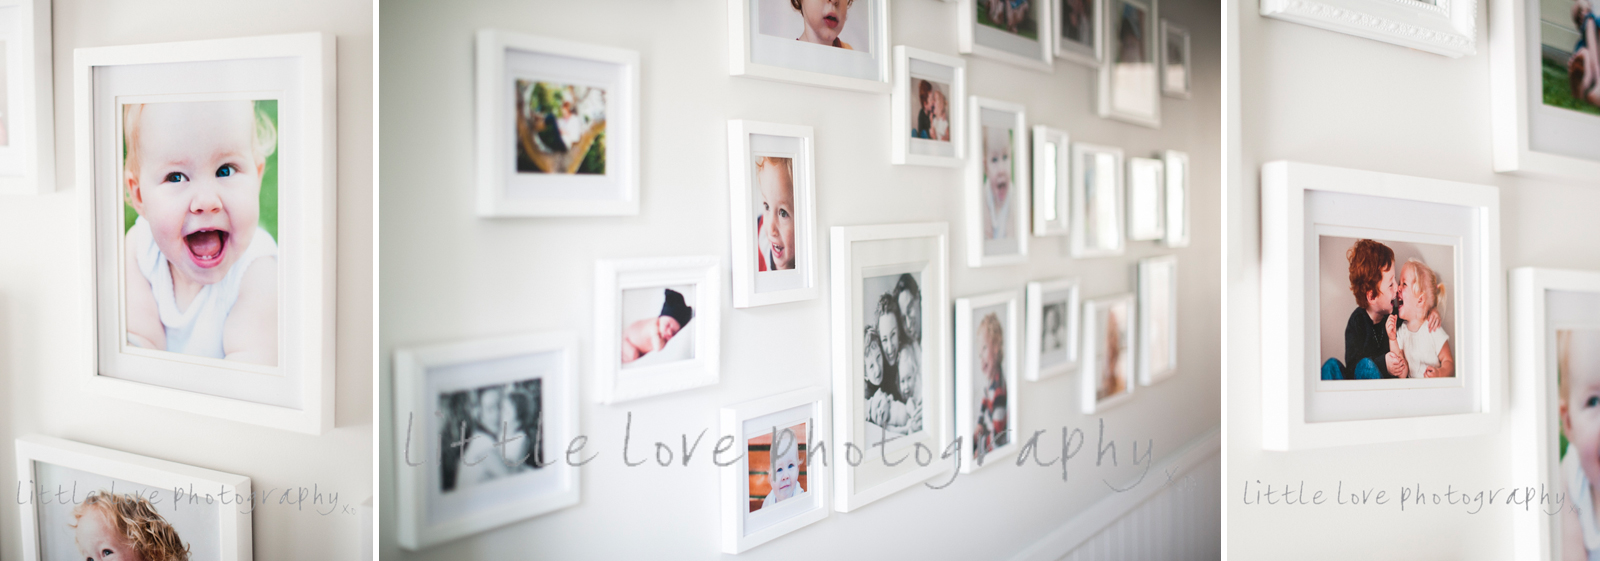 beautiful-images-of-bright-happy-fun-family-photos-displayed-in-client's-house-by-little-love-photography